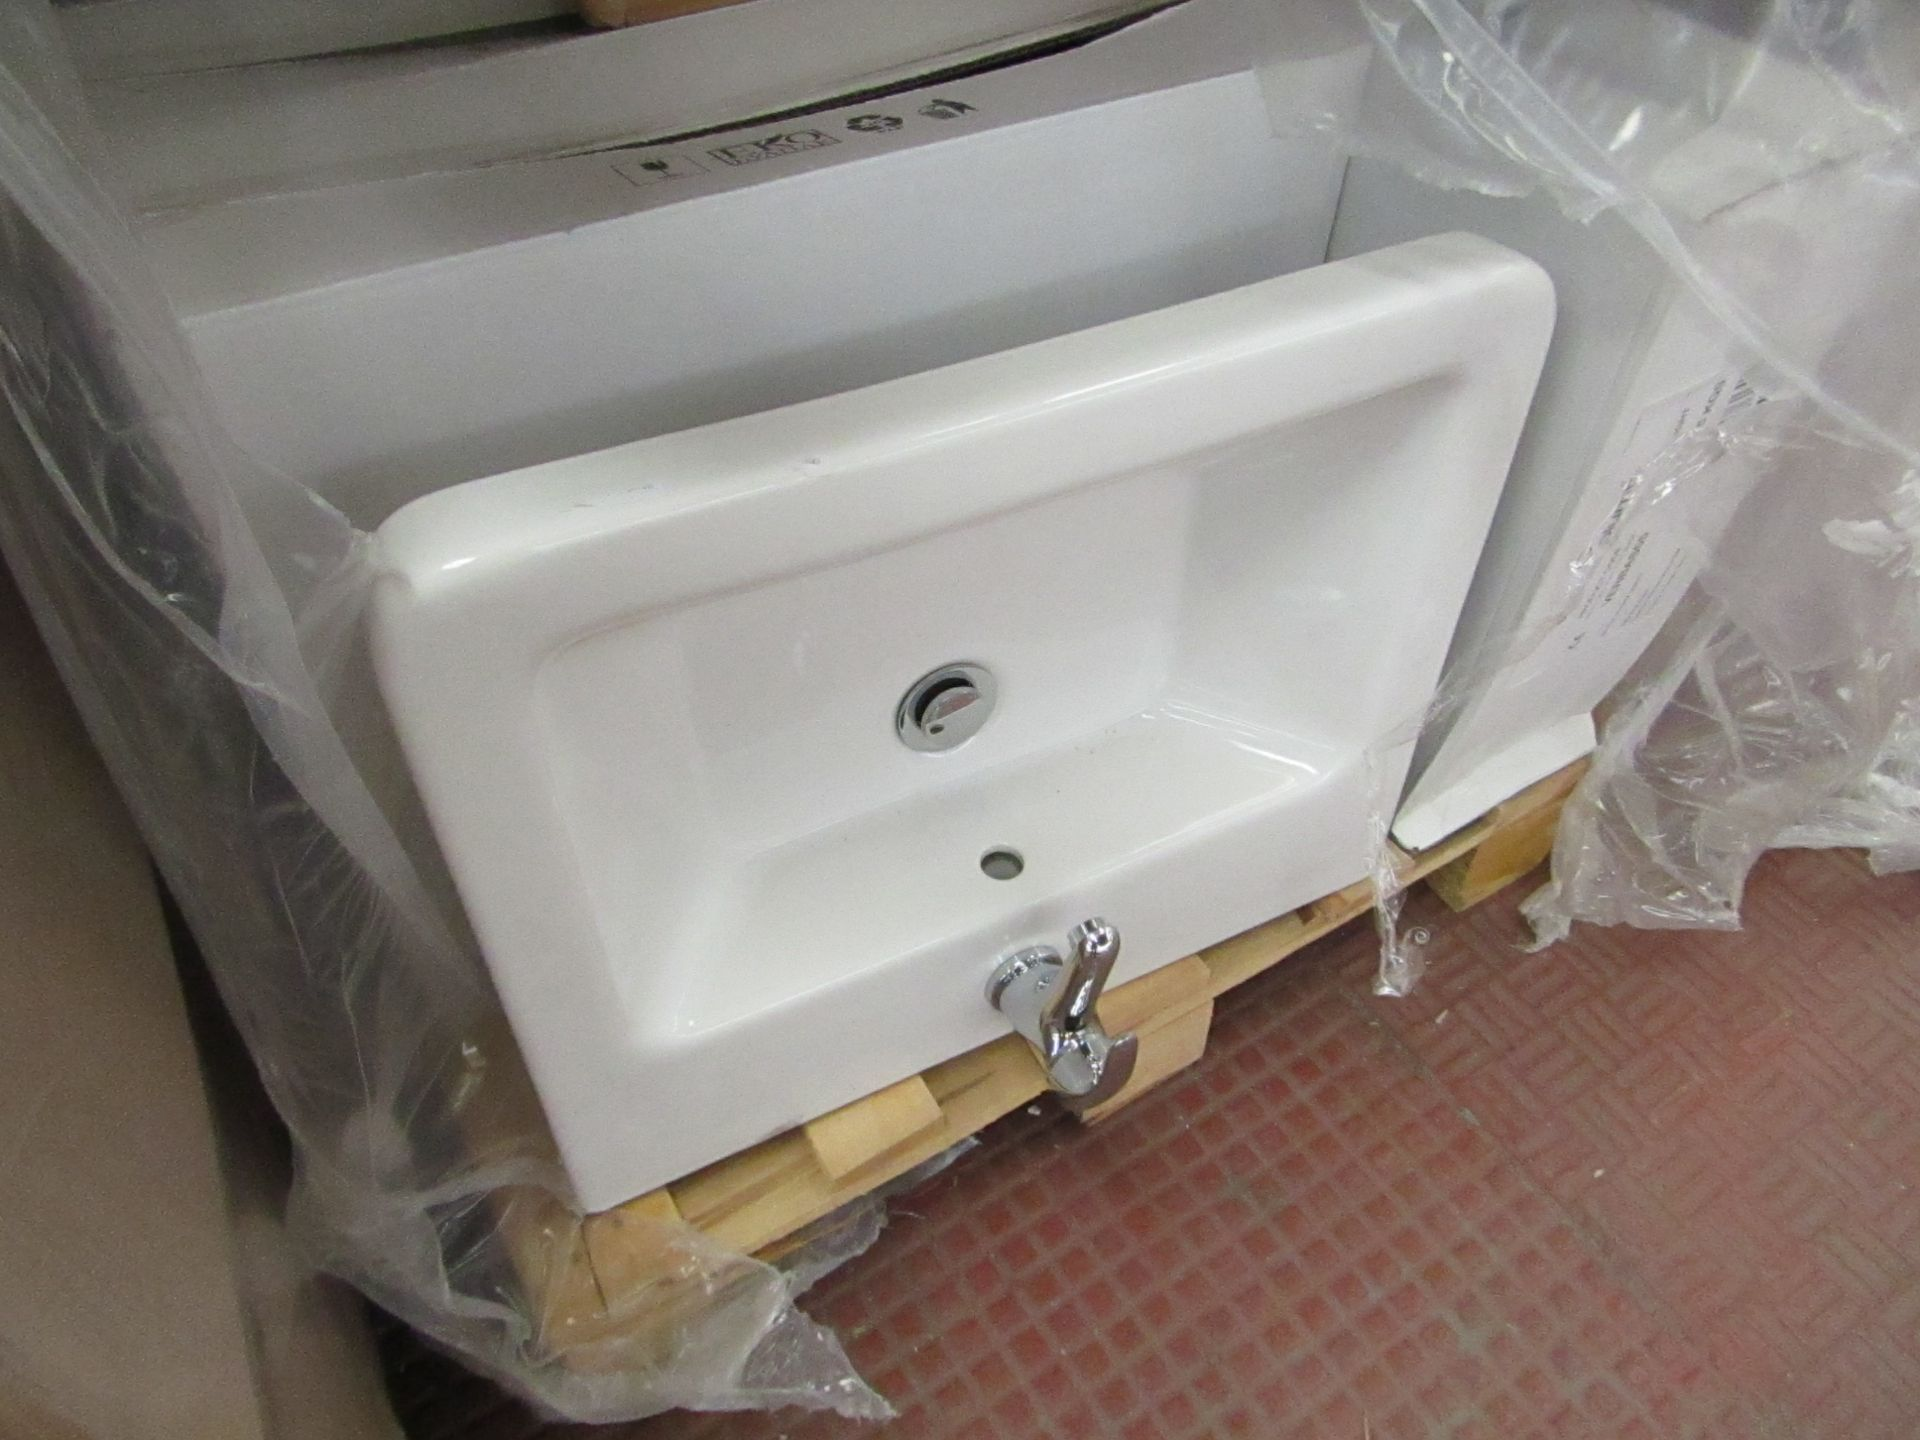 Lotto 14 - Victoria Plum Verso 550mm sink with mono block mixer tap, new and Boxed